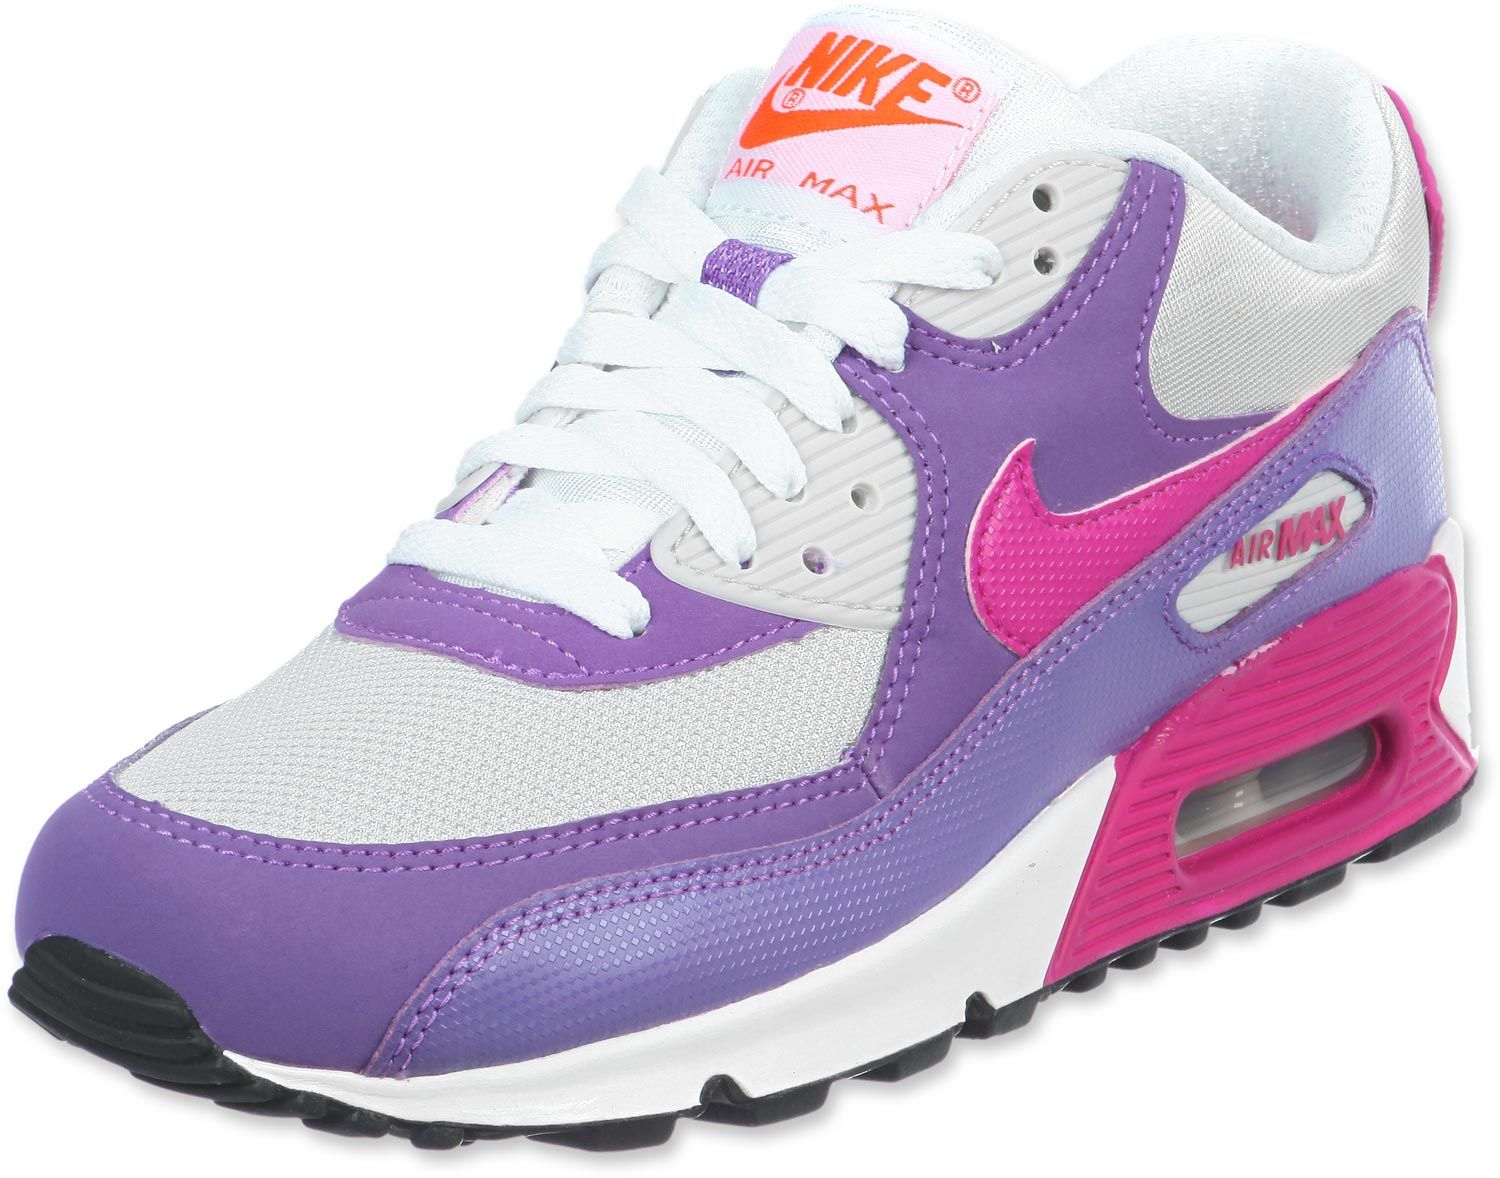 nike malaisie carrière - 1000+ images about Air max on Pinterest | Nike Air Max 90s, Air ...